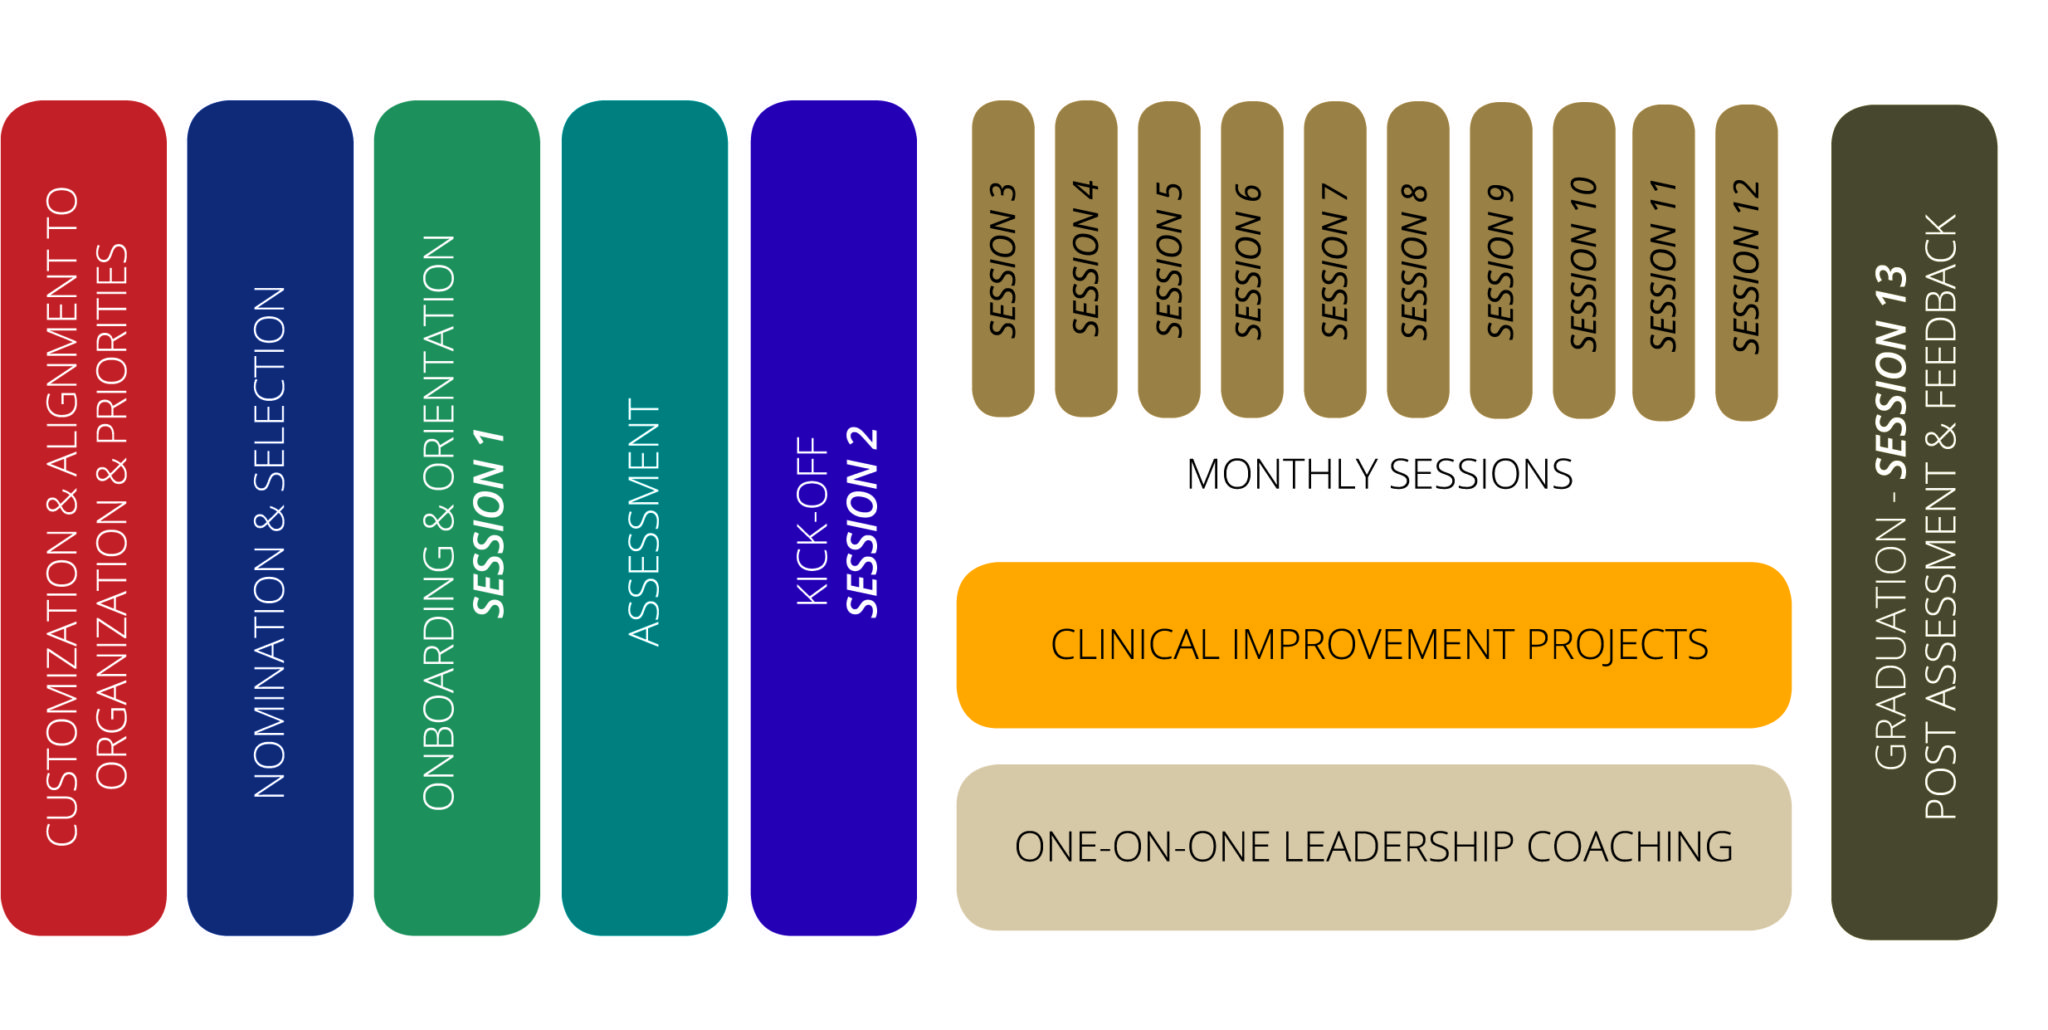 Physician Leadership Fellowship Example